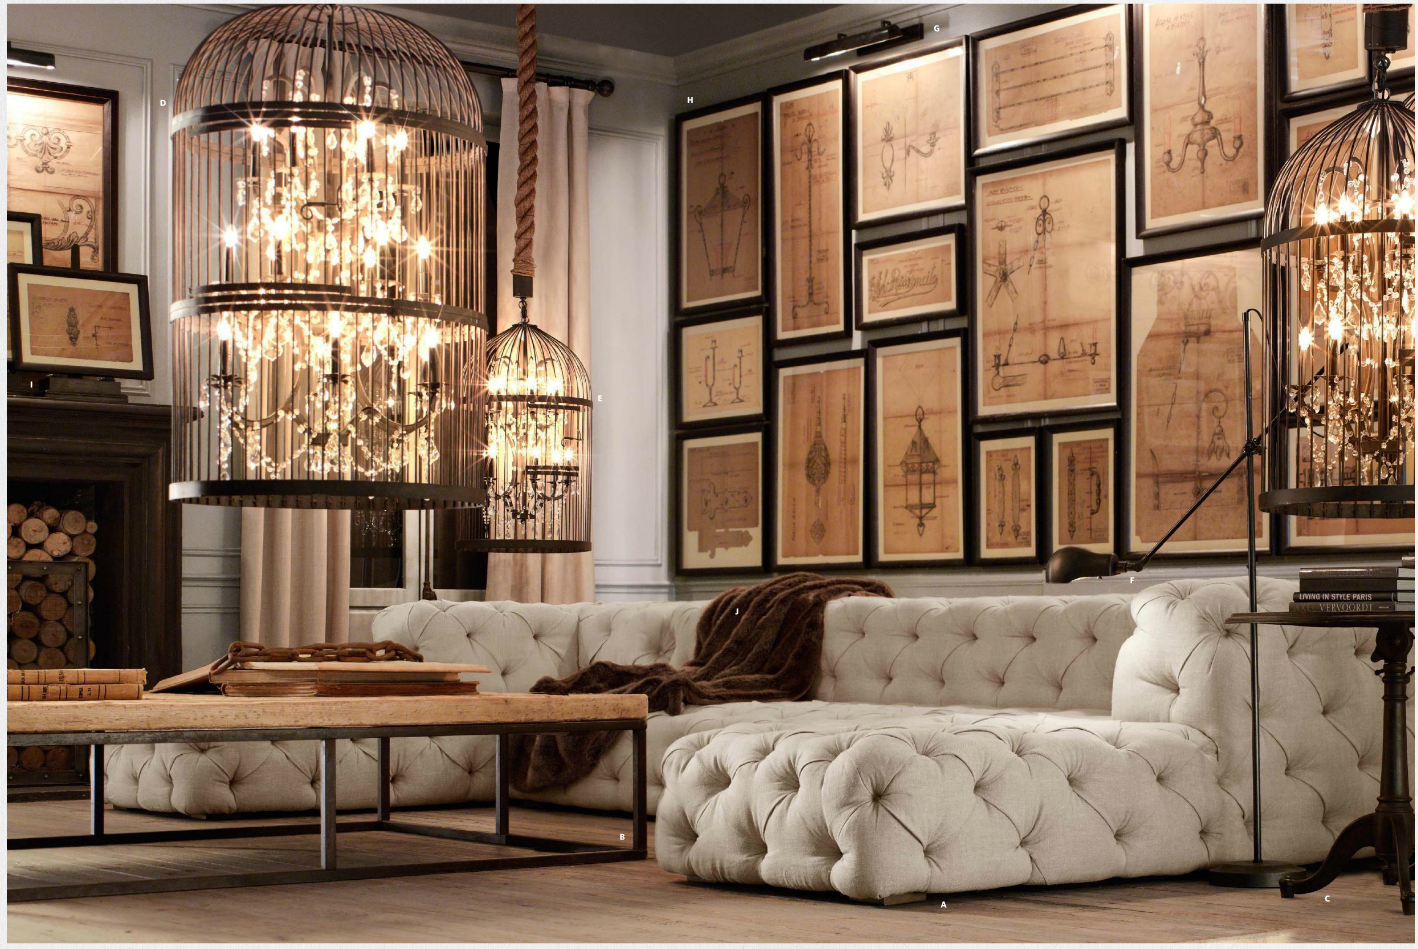 restoration hardware office inspiration ideas